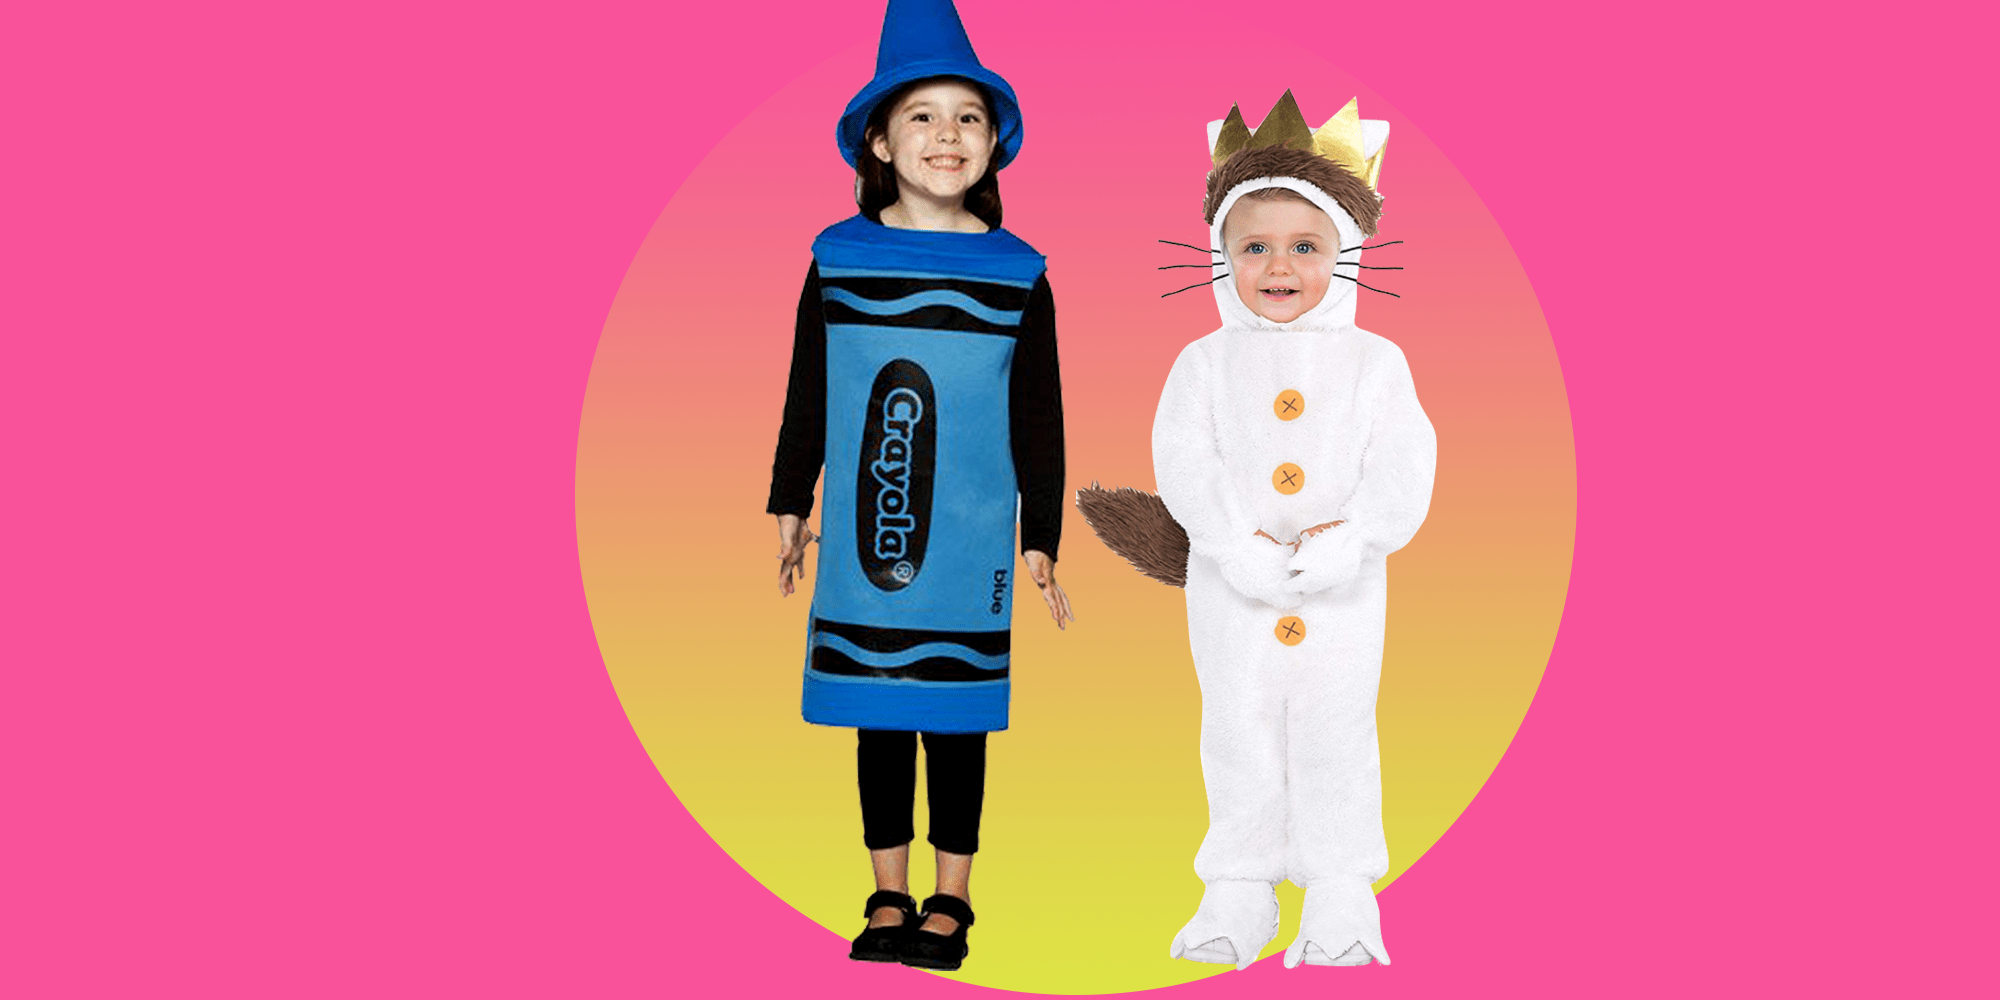 Feel free to accessorize wit. 40 Cute Toddler Halloween Costume Ideas Costumes For 1 And 2 Year Olds 2021